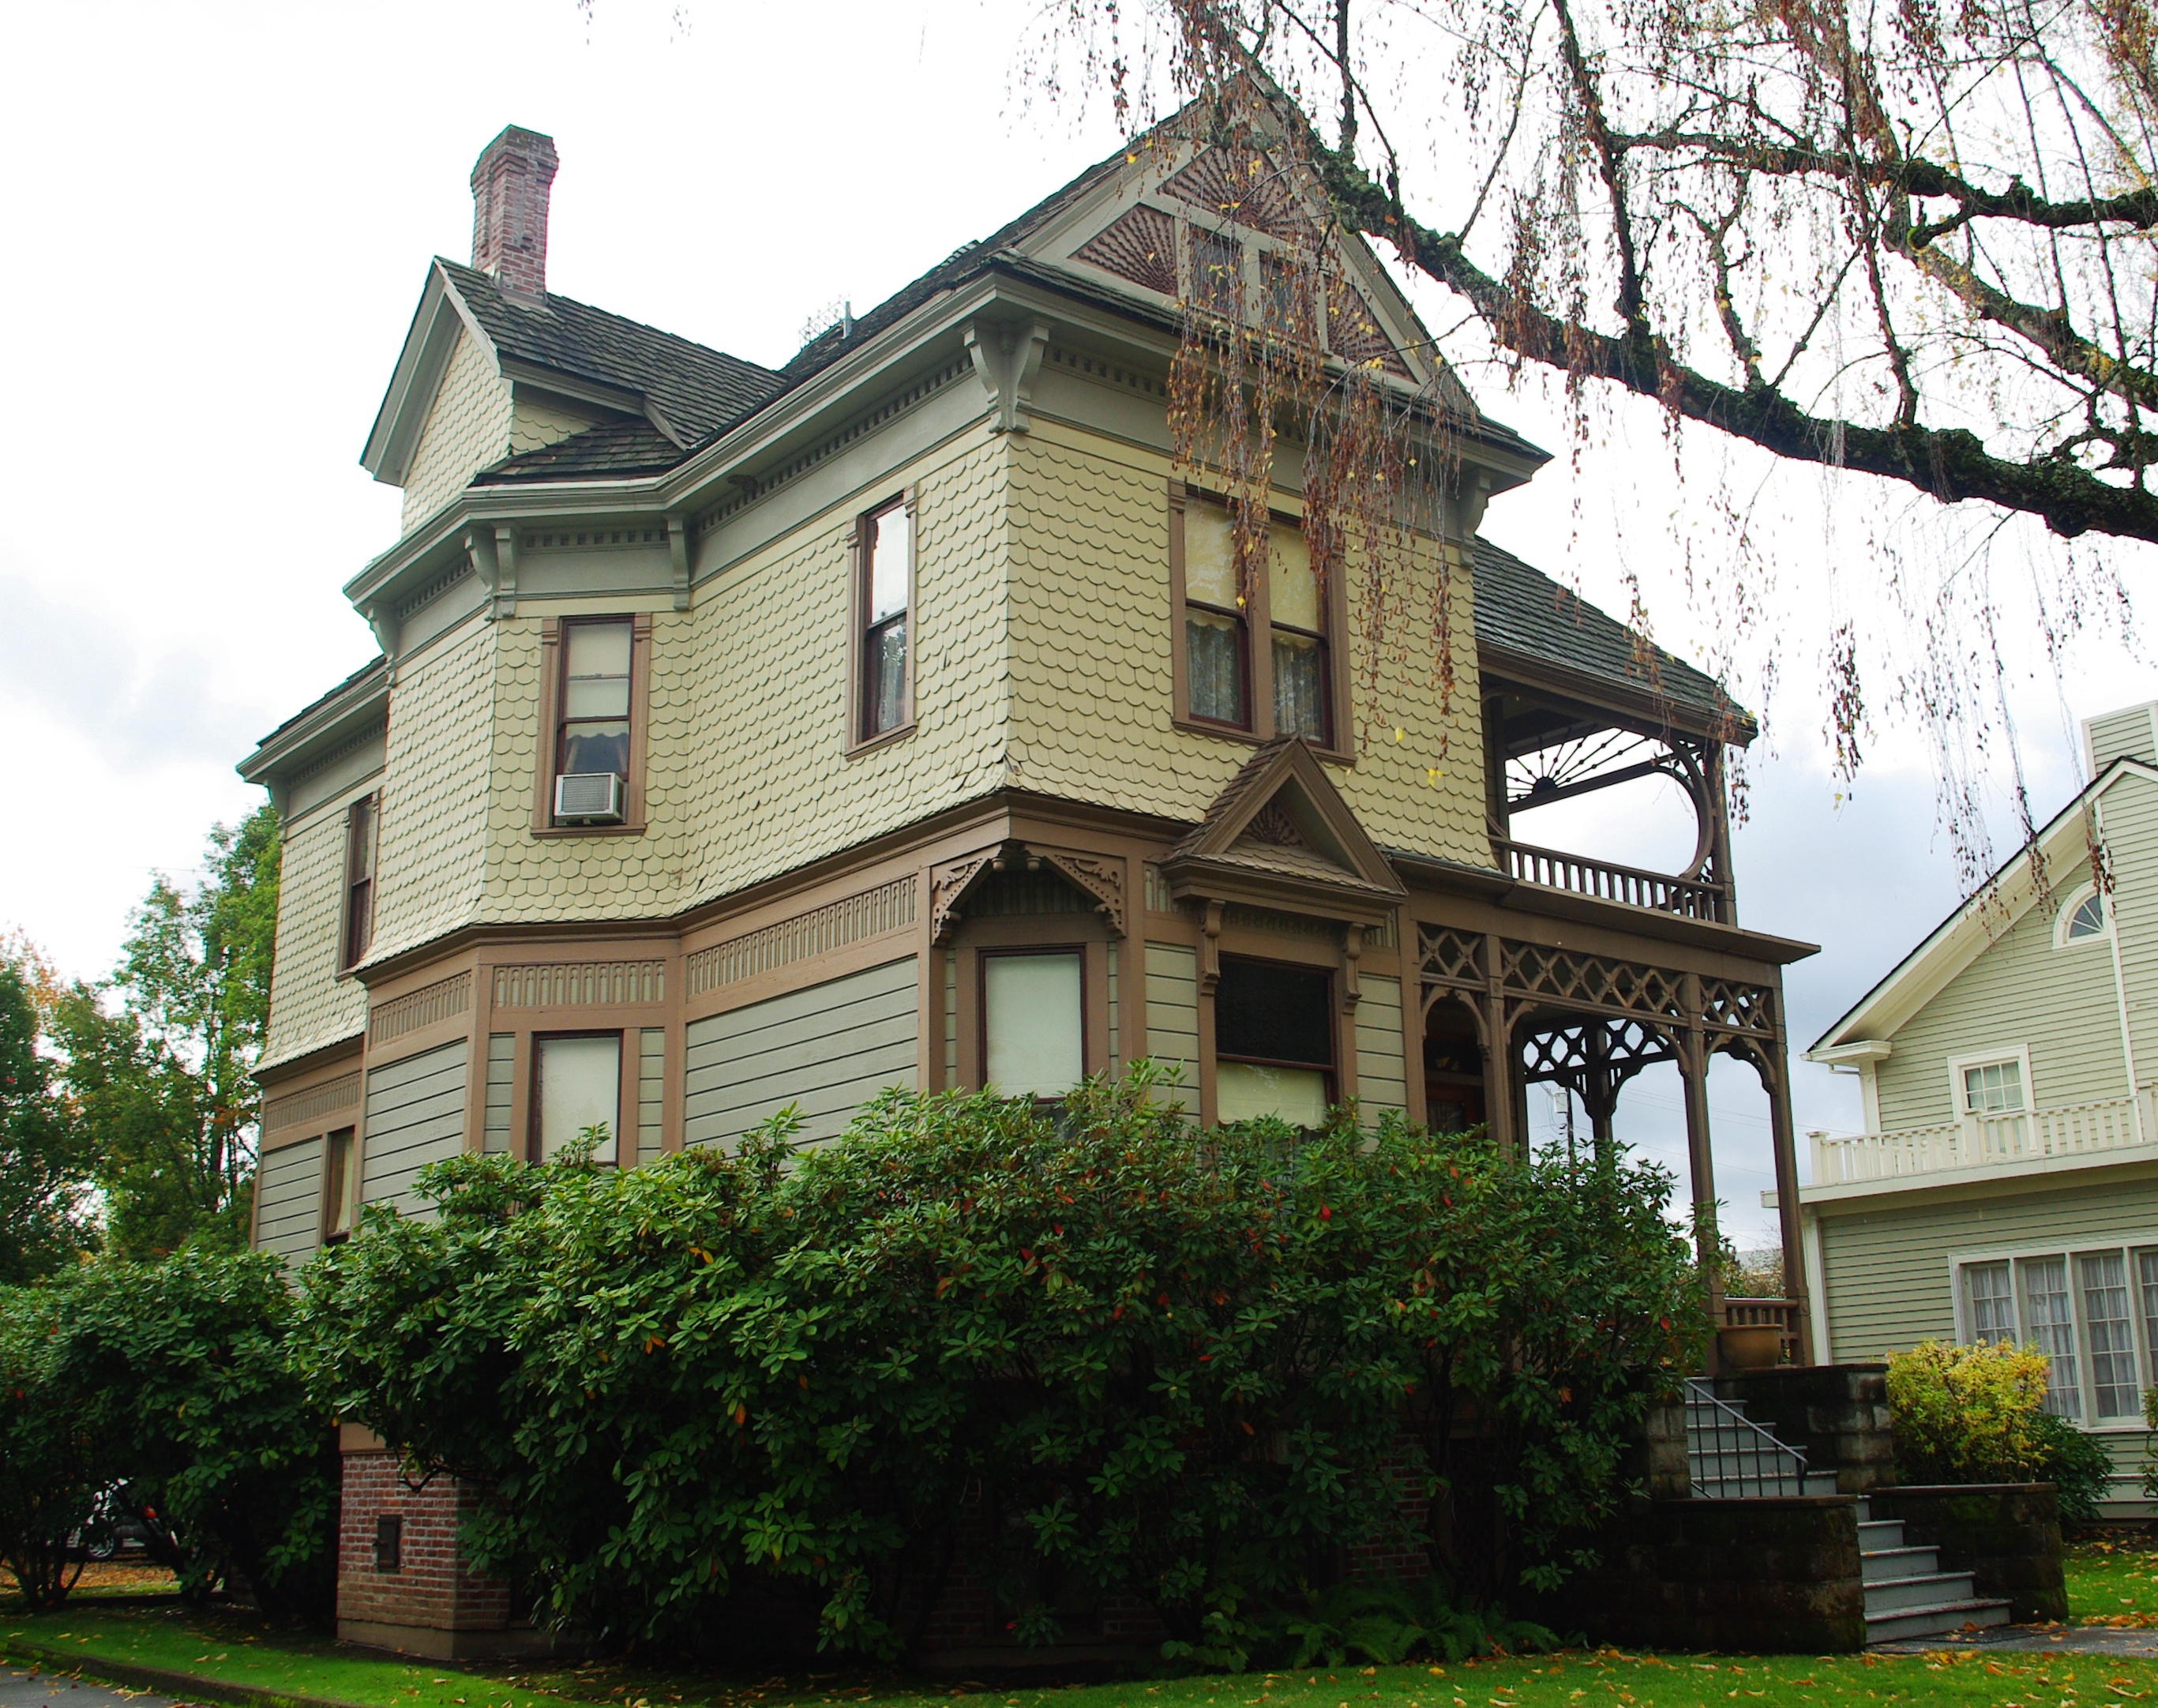 File:George Collins House - Salem, Oregon.JPG